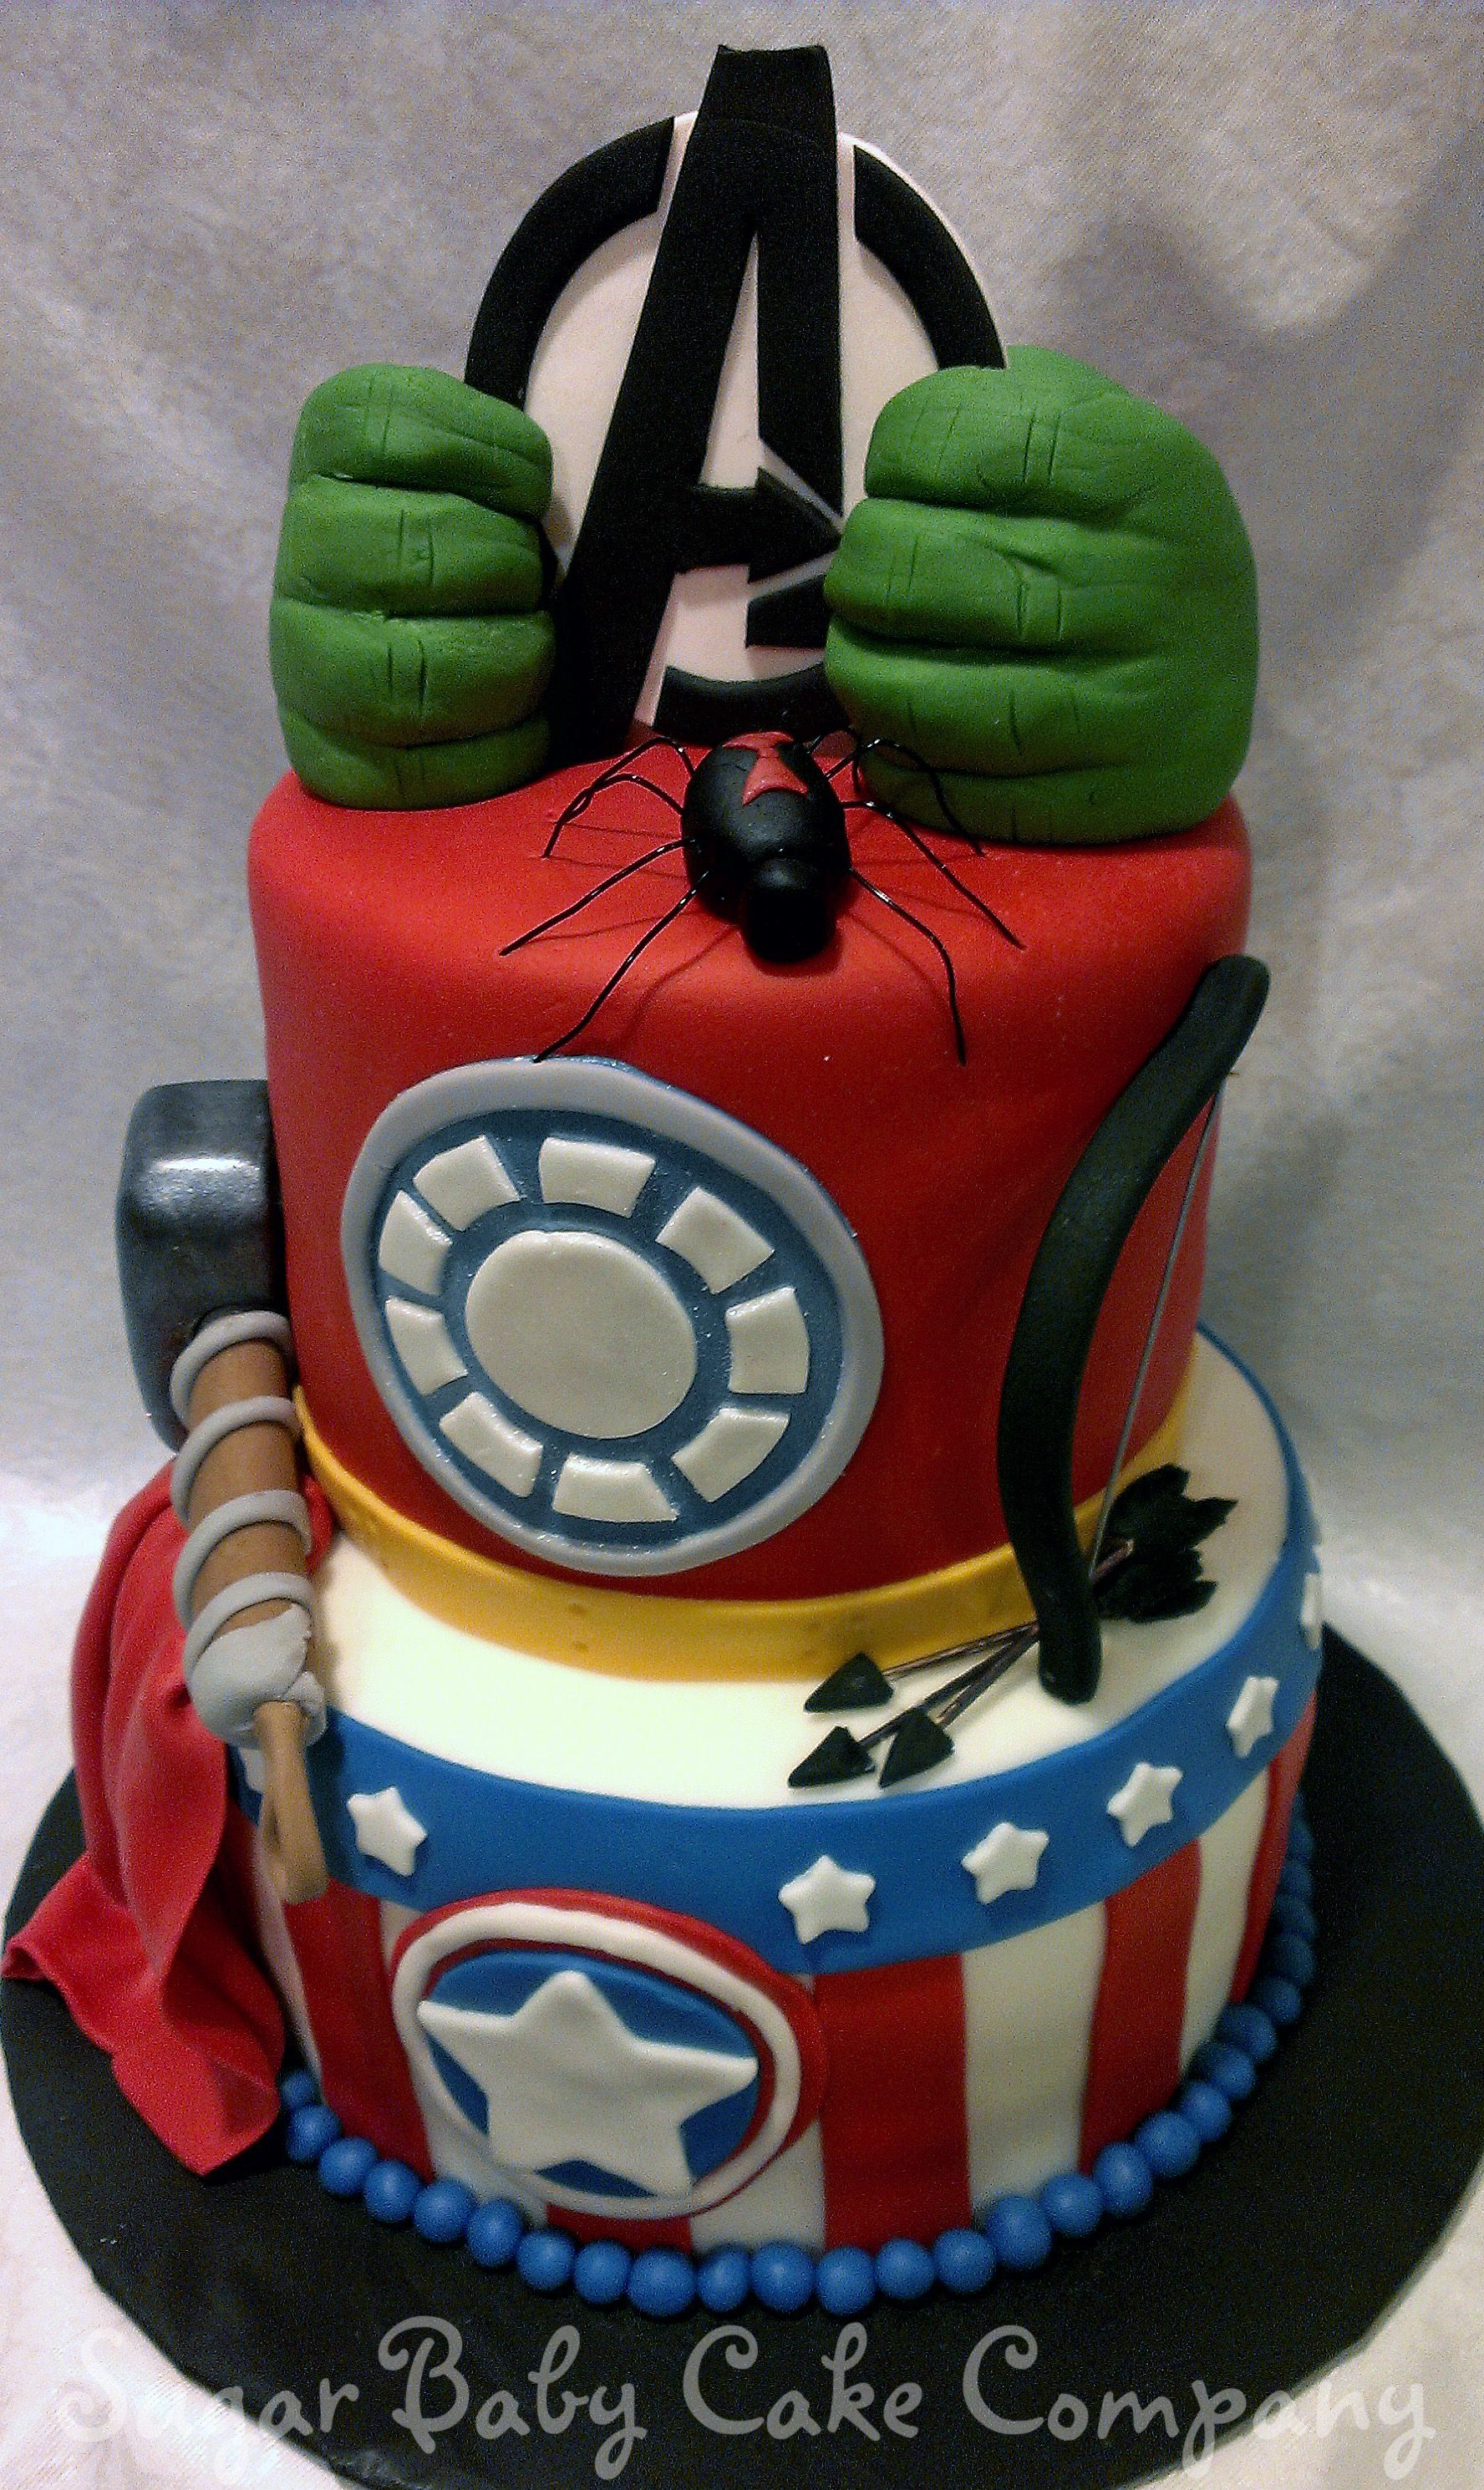 1776 X 2980 In 25 Awesome Photo Of Little Boy Birthday Cakes